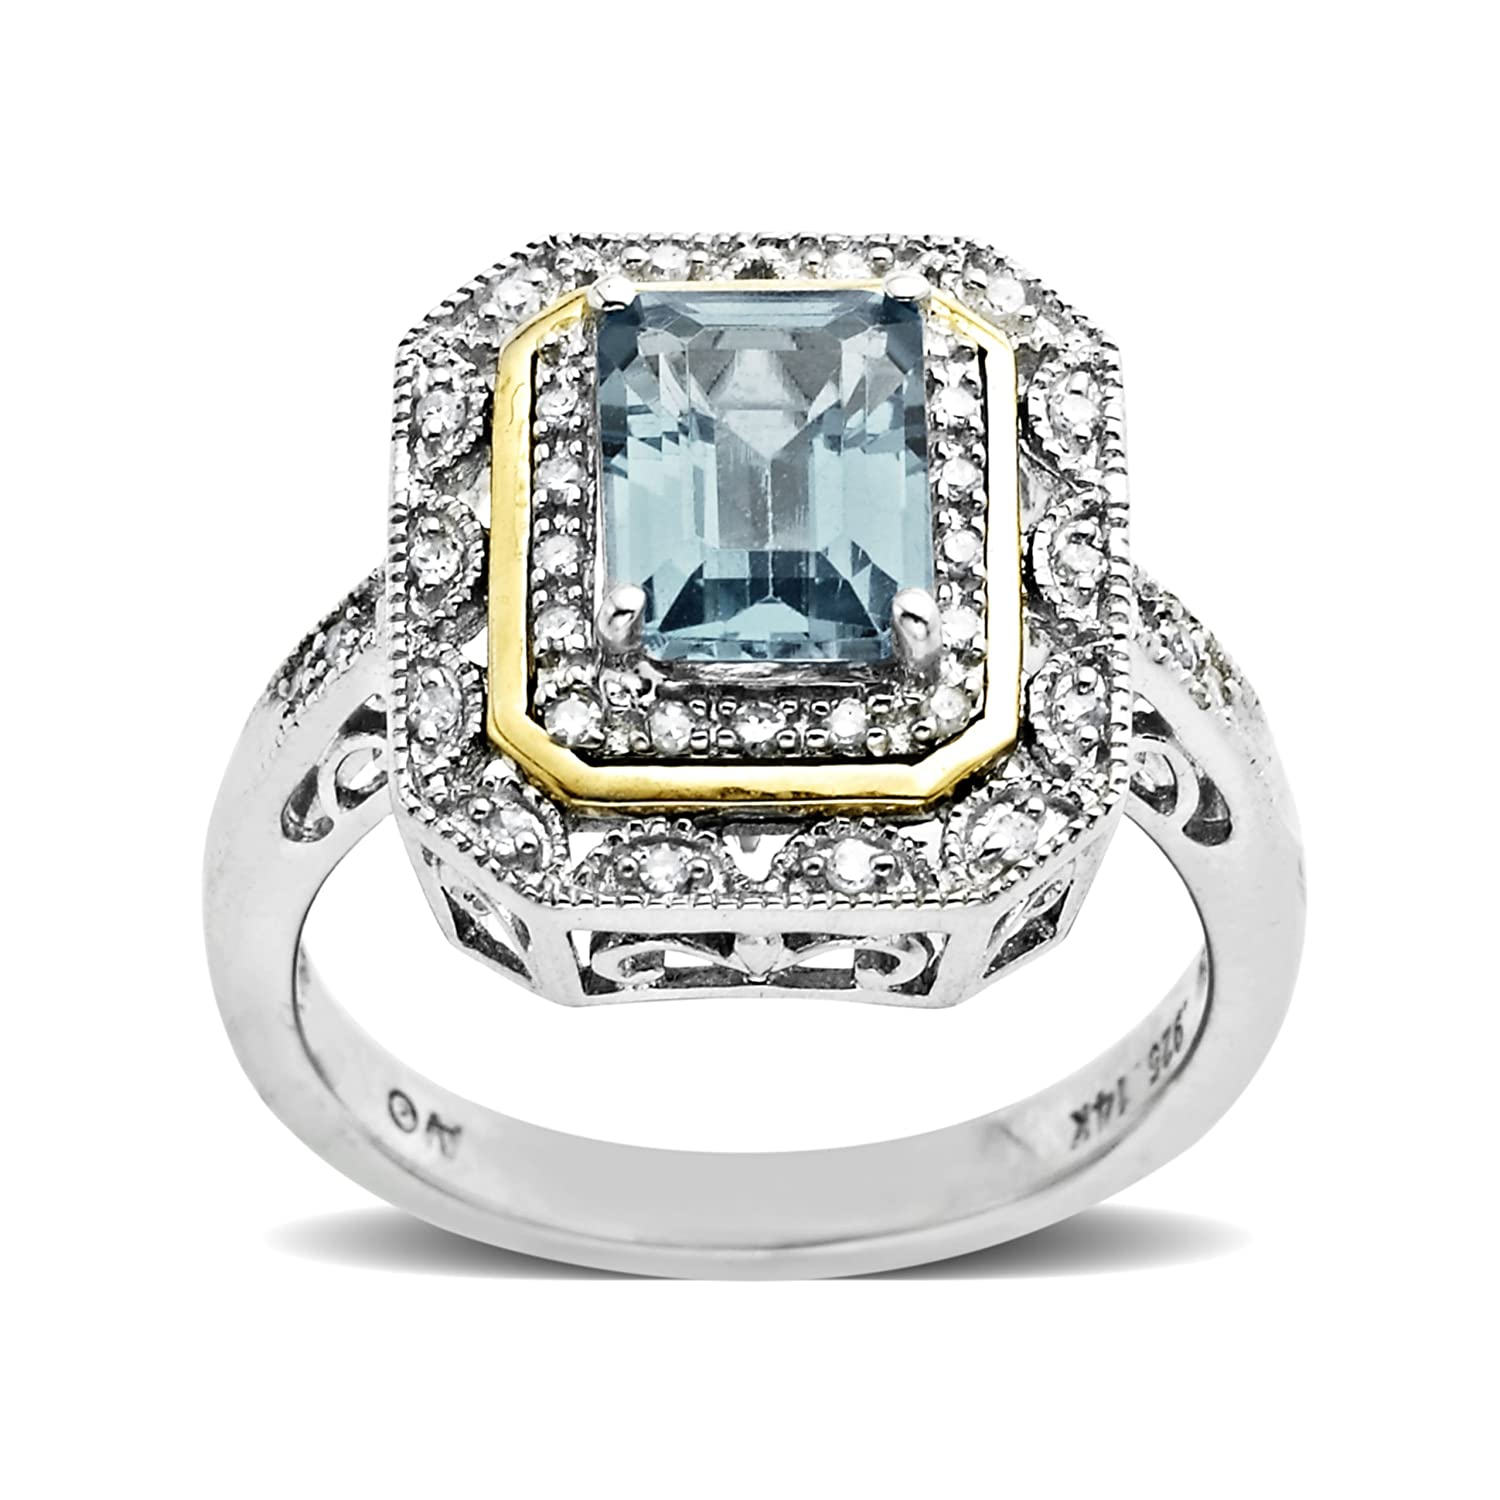 a138946f215a2 Sterling Silver and 14k Yellow Gold Emerald Cut Created Emerald and Diamond  Accent Art Deco-Style Ring